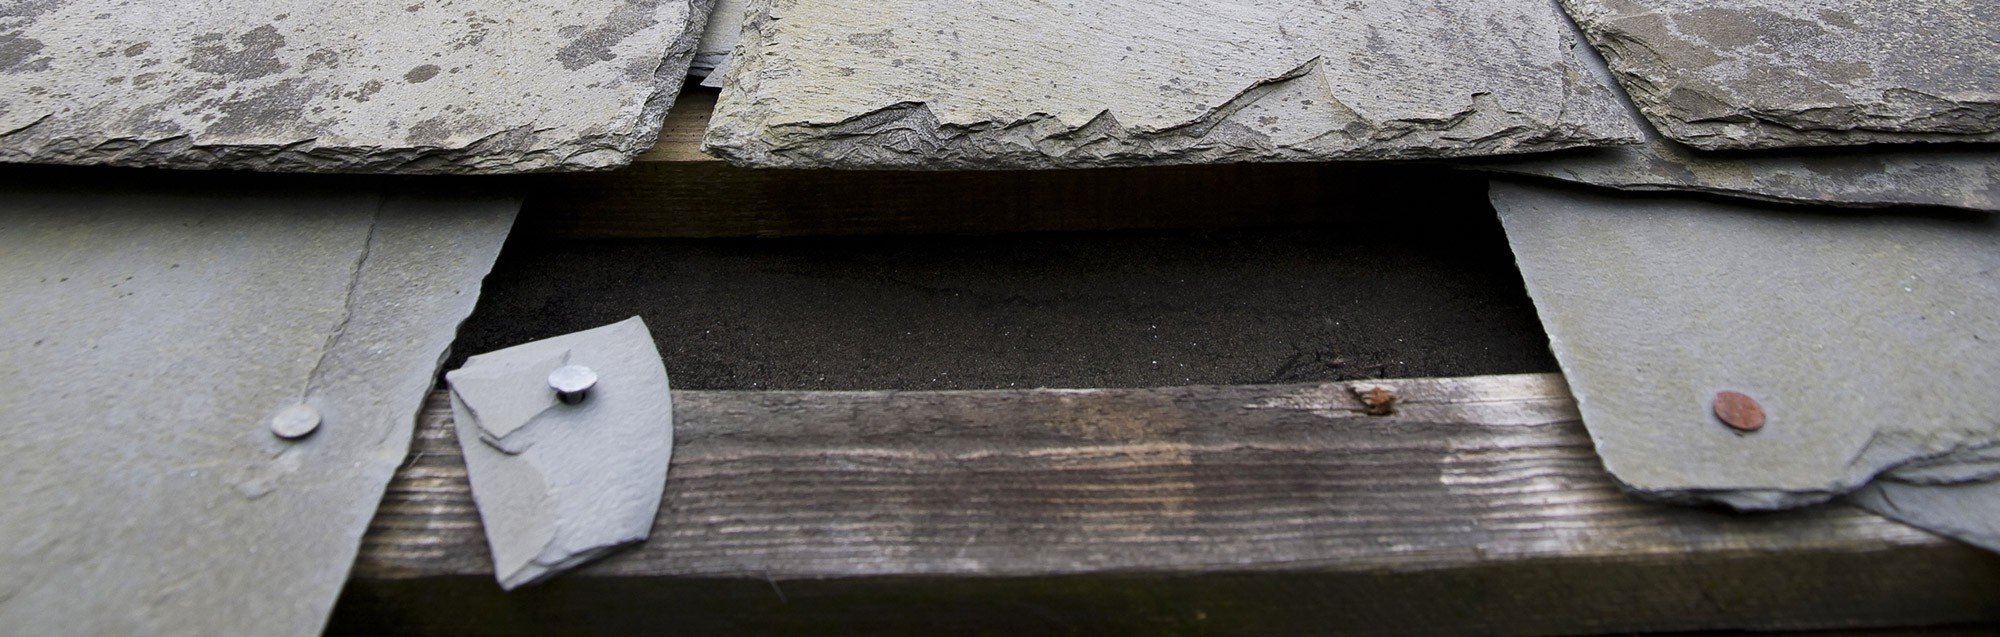 Repairing a broken roof tile